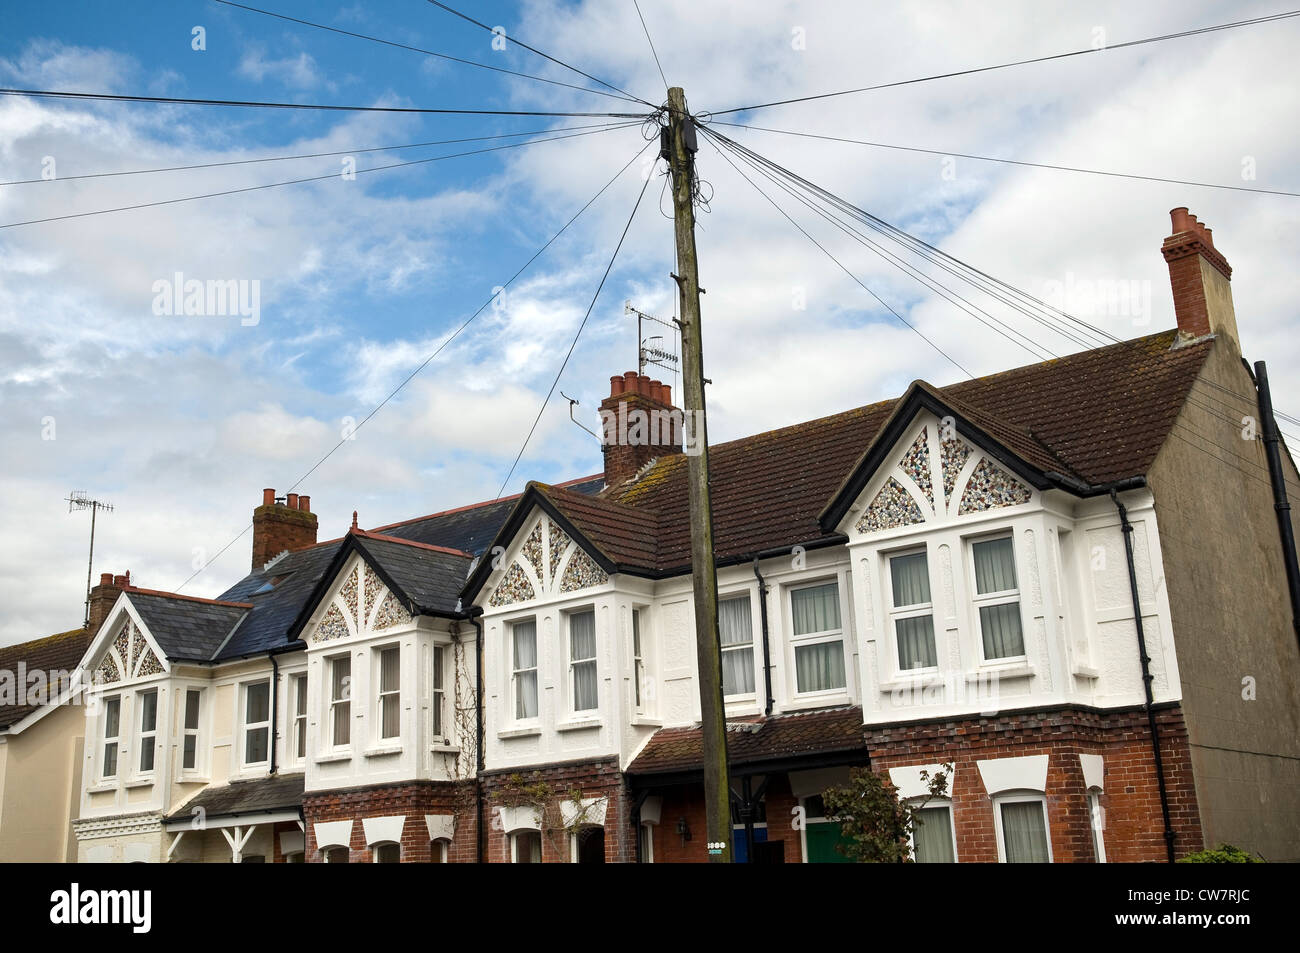 Unusual Edwardian houses with gables decorated with broken pieces of ceramic crockery in Worthing, West Sussex, - Stock Image